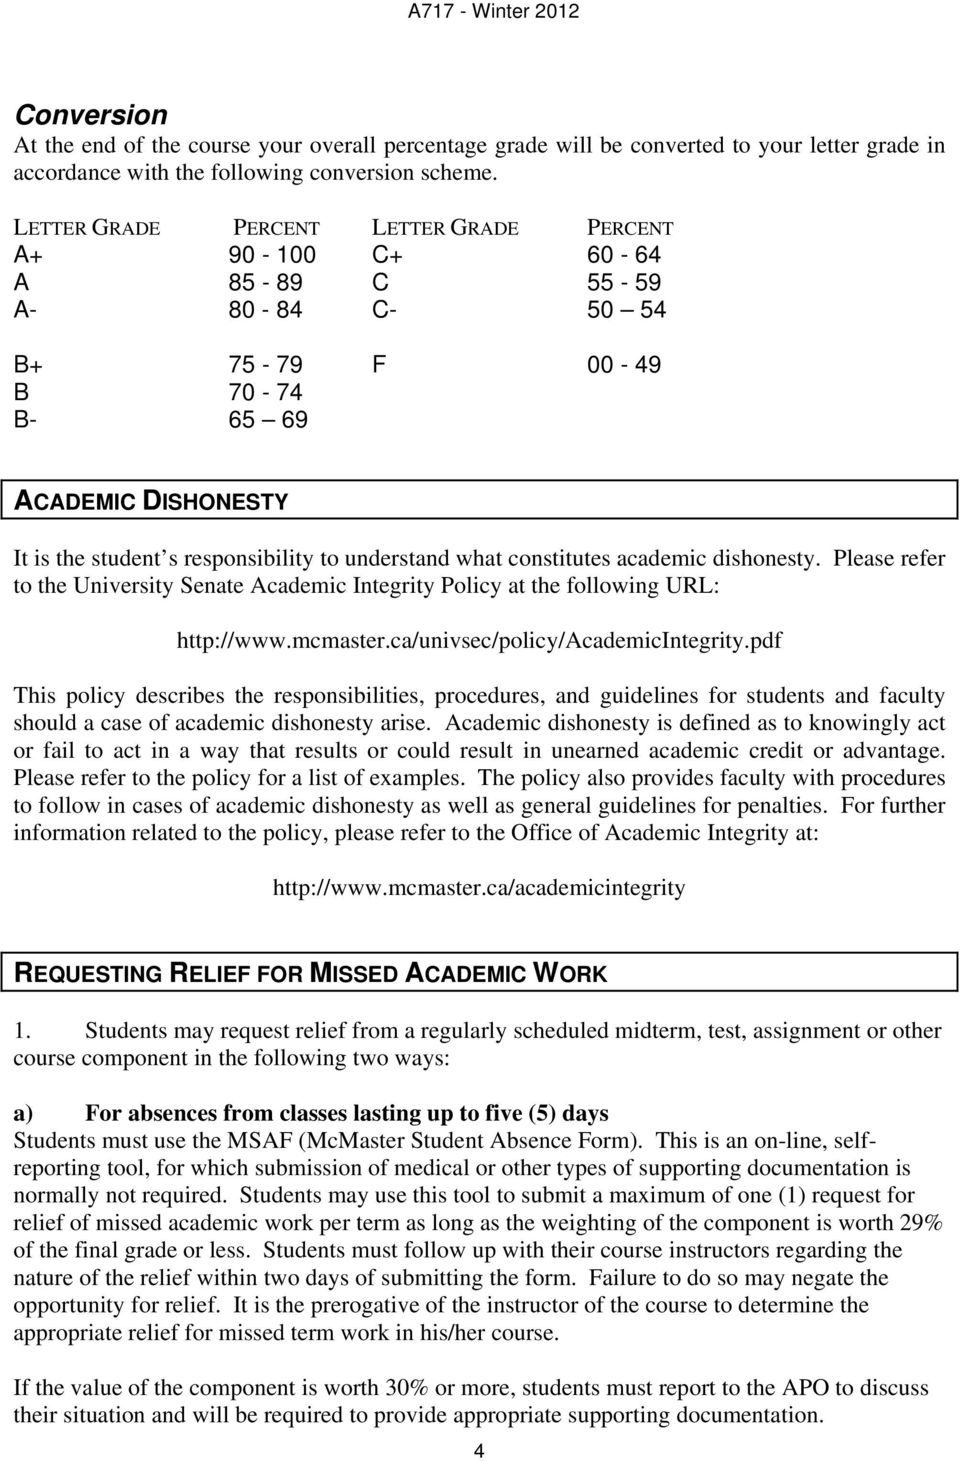 what constitutes academic dishonesty. Please refer to the University Senate Academic Integrity Policy at the following URL: http://www.mcmaster.ca/univsec/policy/academicintegrity.